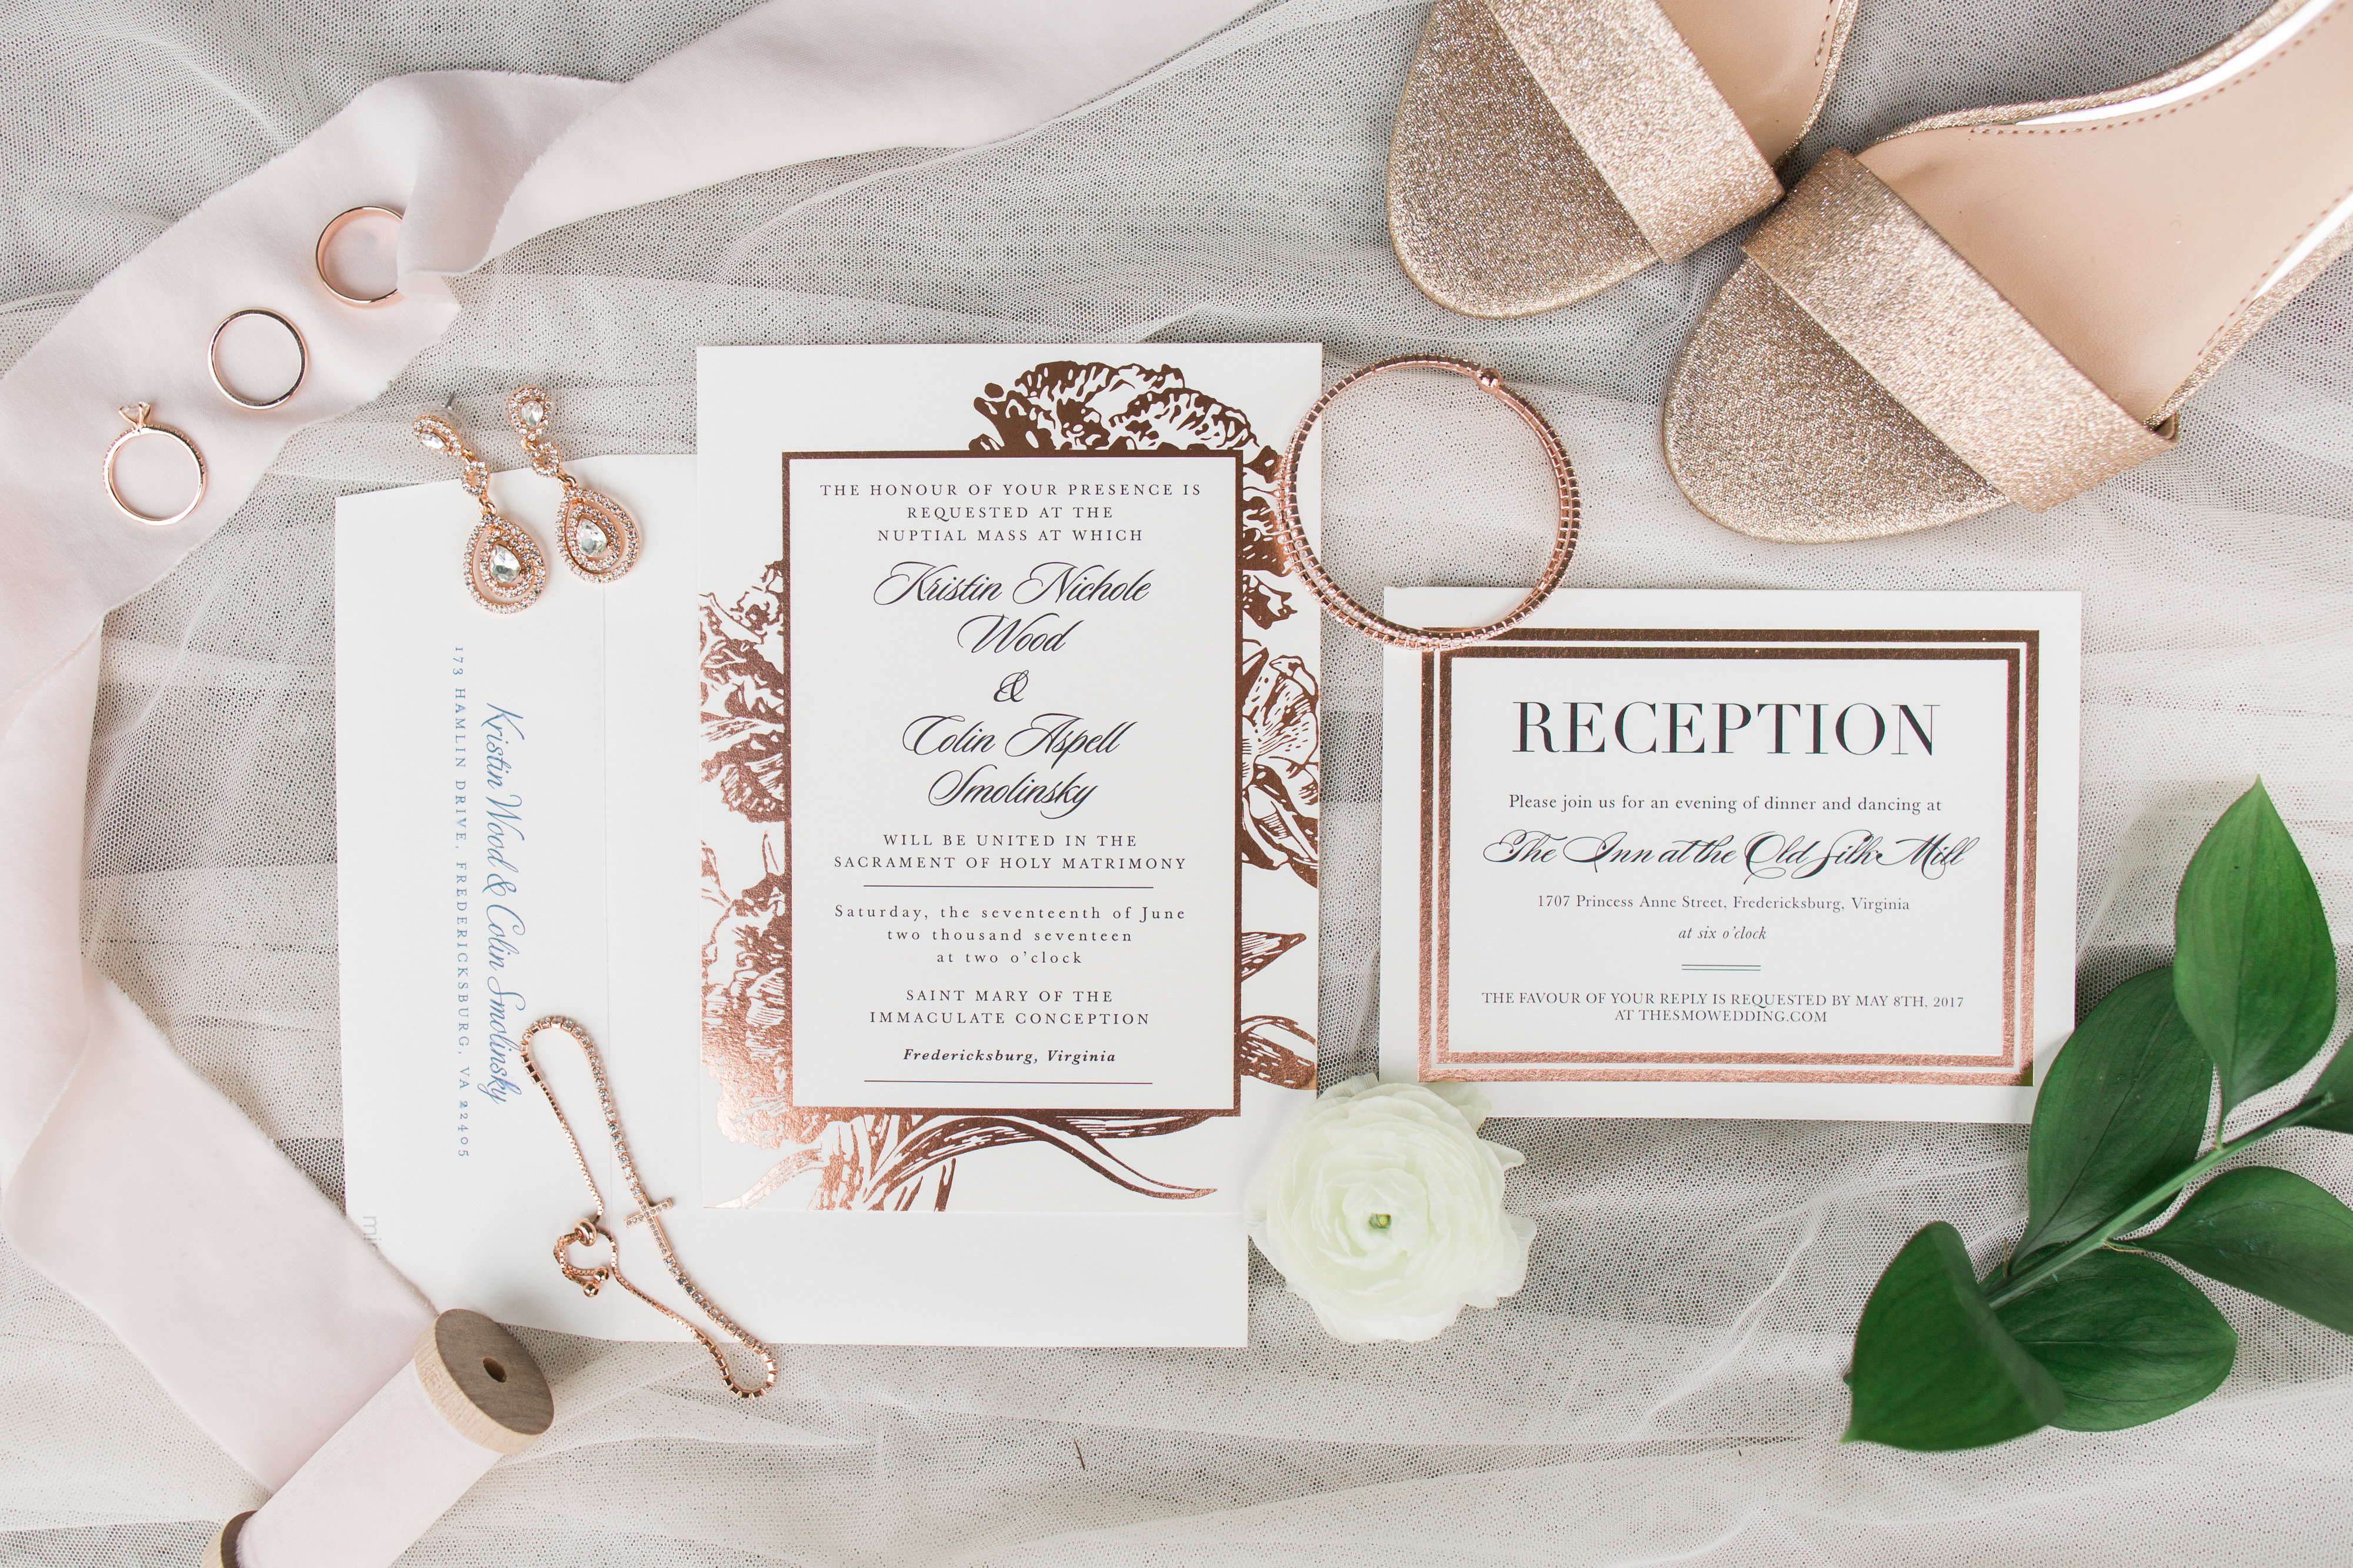 Wedding Invitations 101: Everything You Need To Know About Wedding Invitation Wording